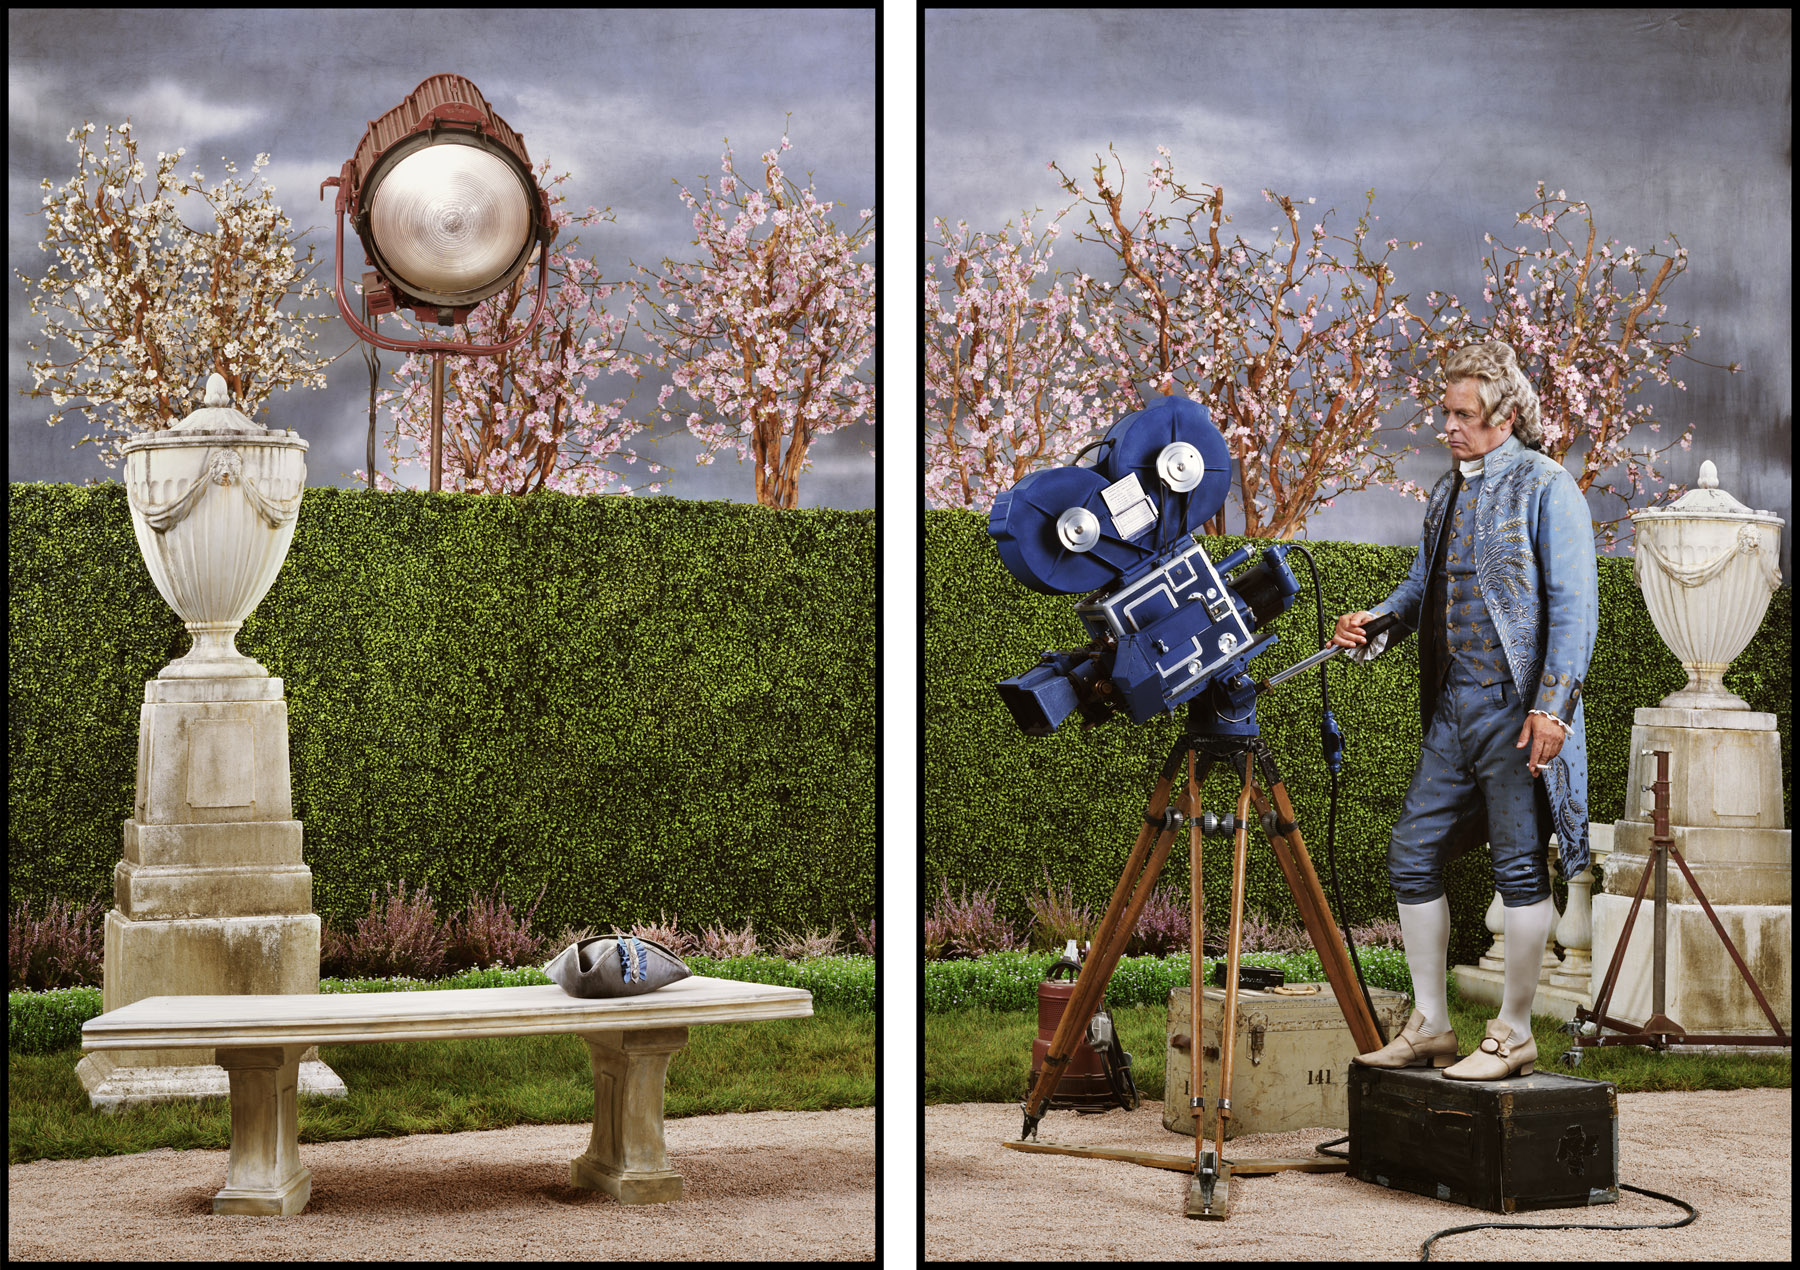 Rodney Graham: Actor/Director, 1954 (2013). Painted aluminium light box with transmounted chromogenic transparency. 91 5/8 x 71 5/8 x 7 inches each panel (91 5/8 x 148 x 7 inches overall). Courtesy the artist and the Rennie Collection, Vancouver.